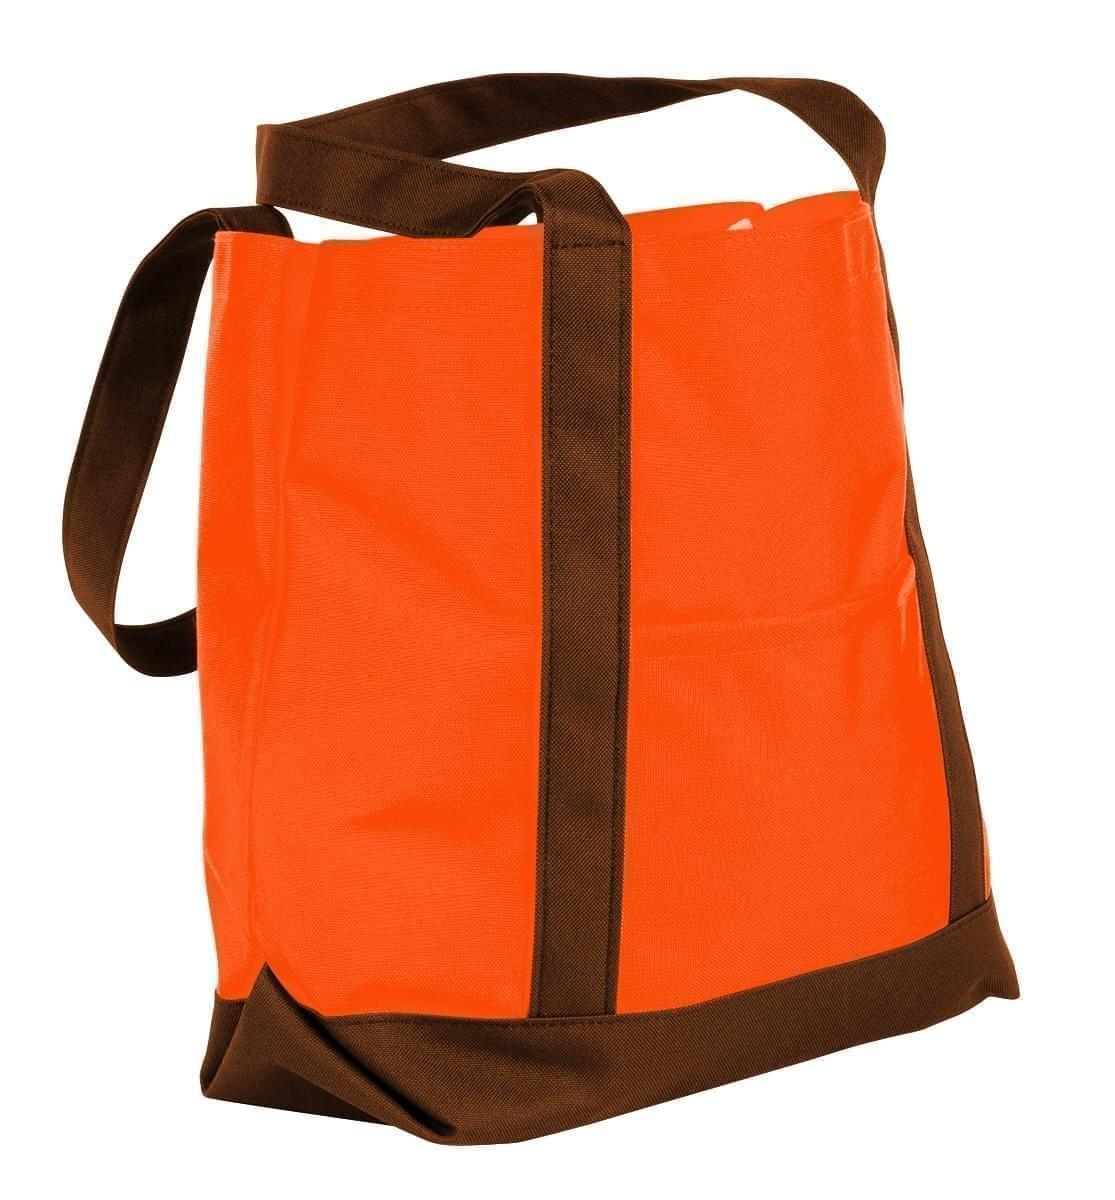 USA Made Nylon Poly Boat Tote Bags, Orange-Brown, XAACL1UAXD